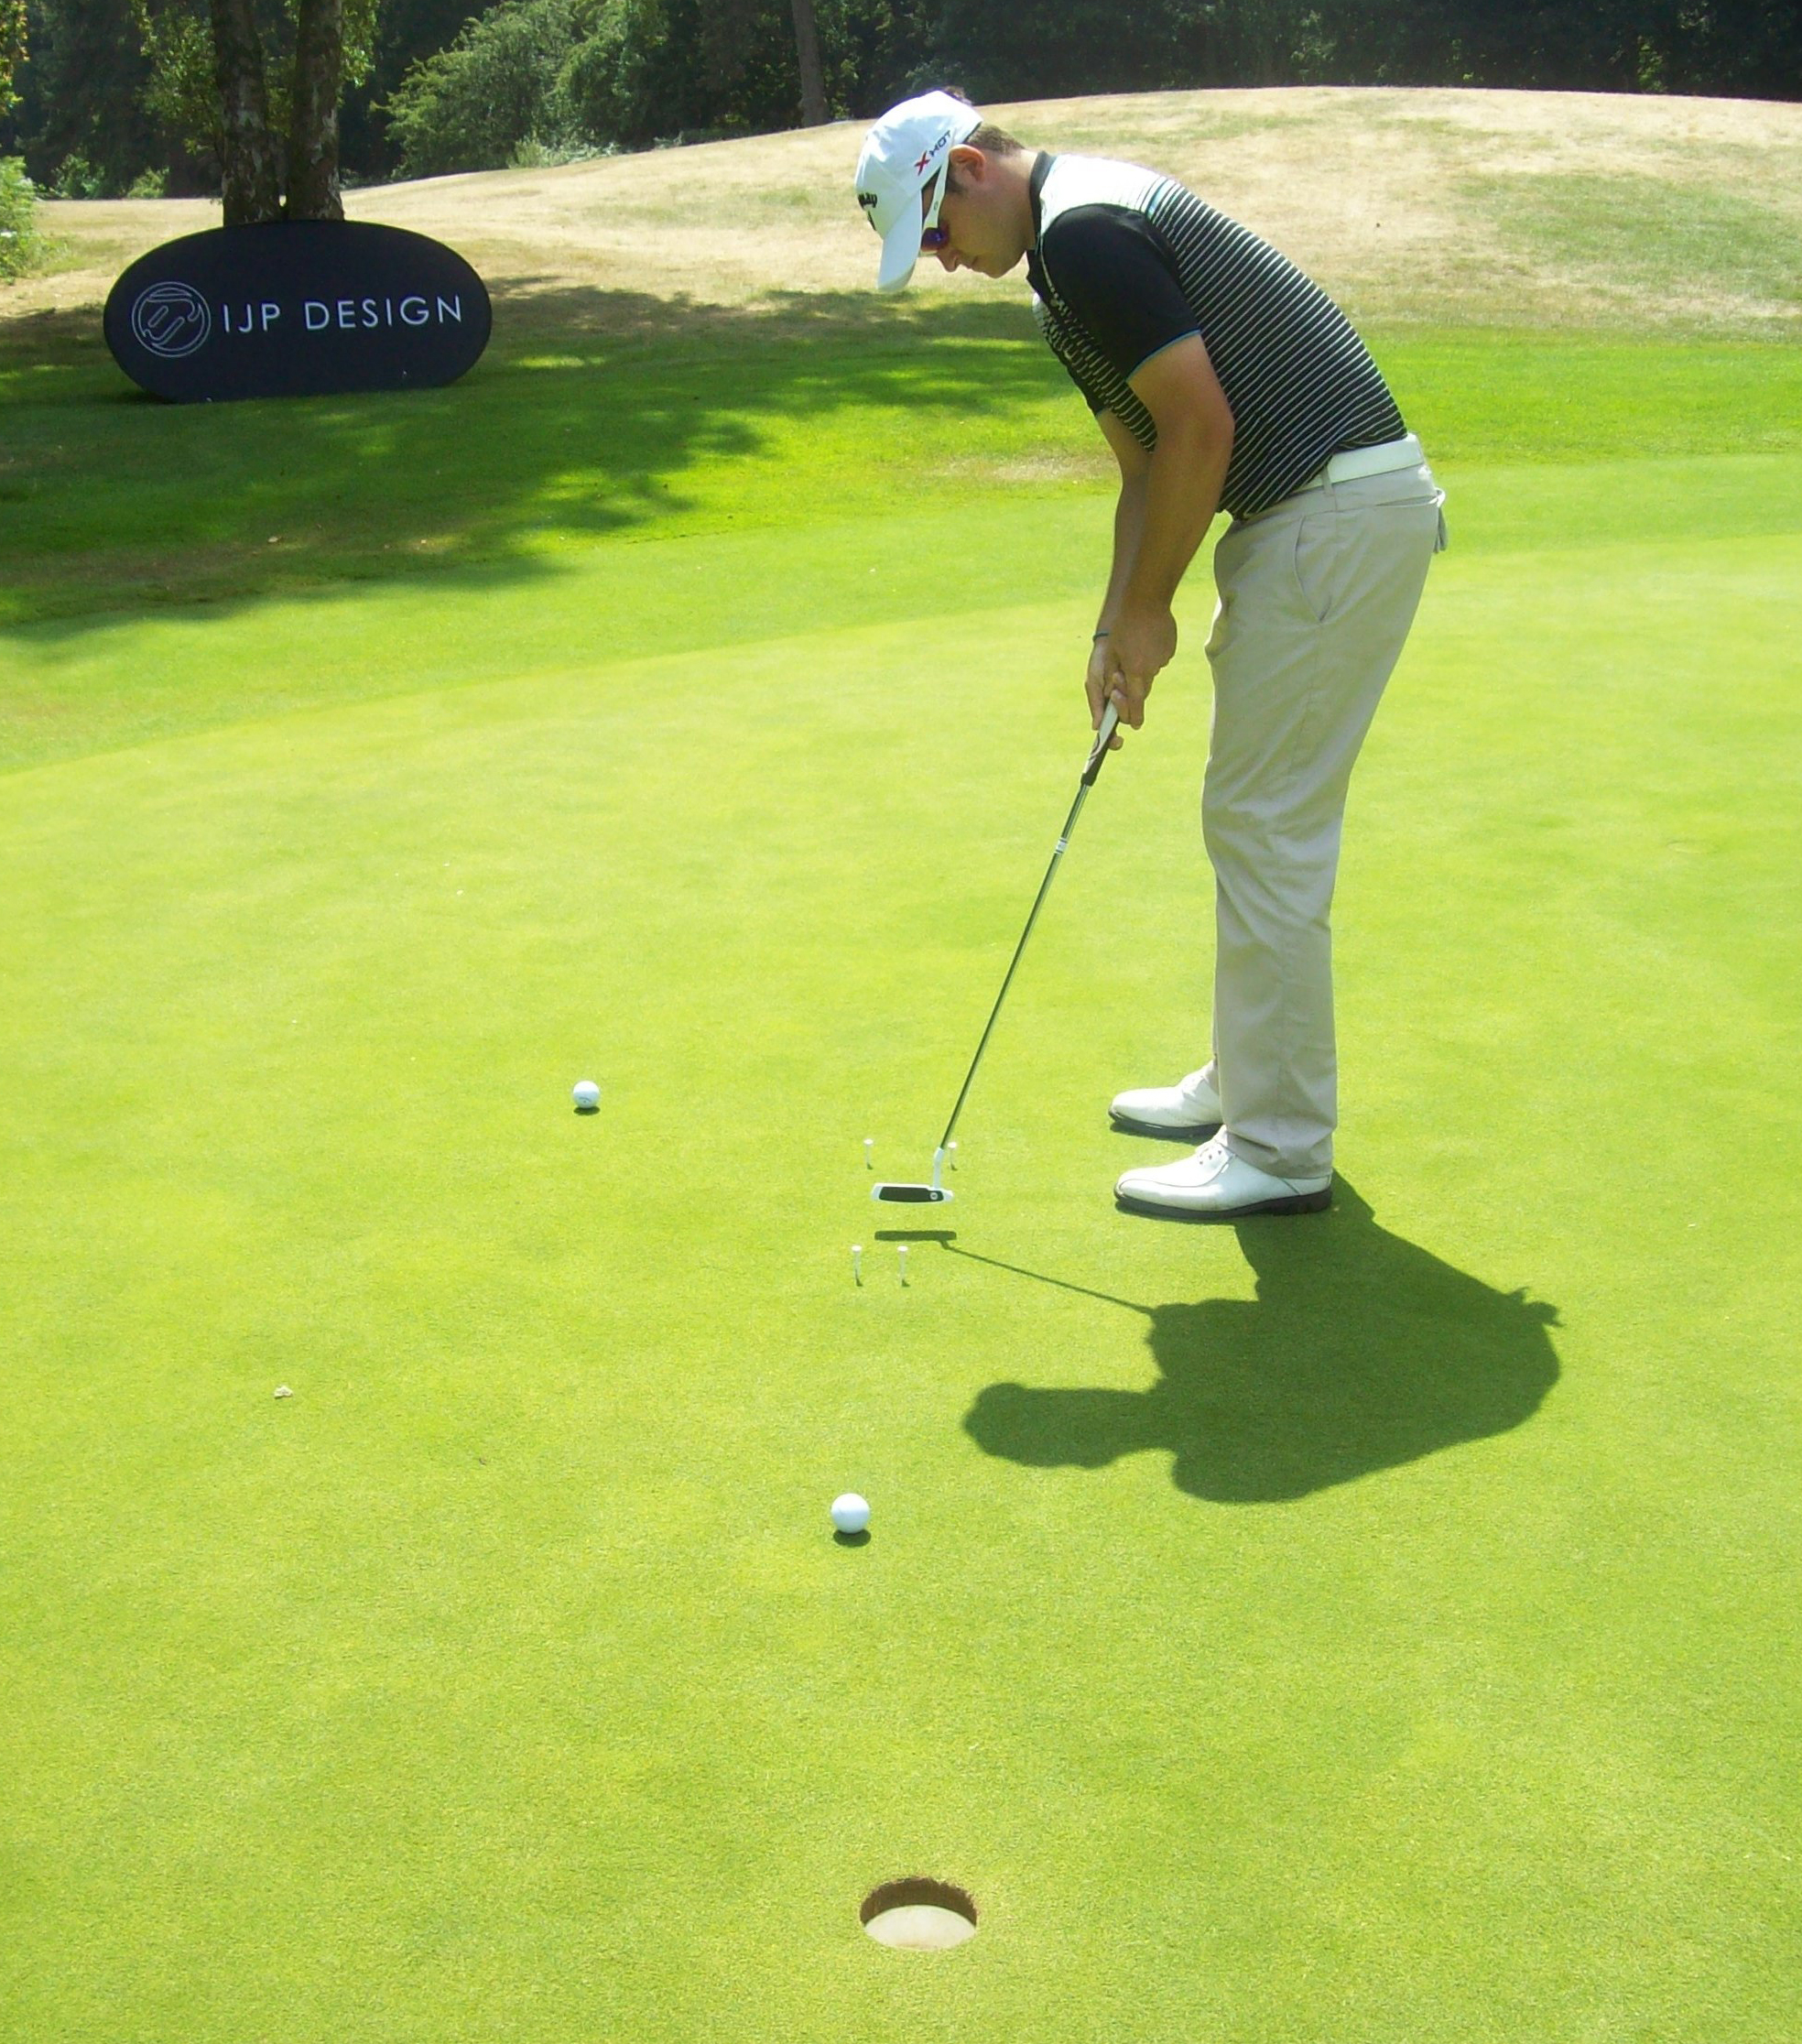 Boyd putts through his target and into the hole